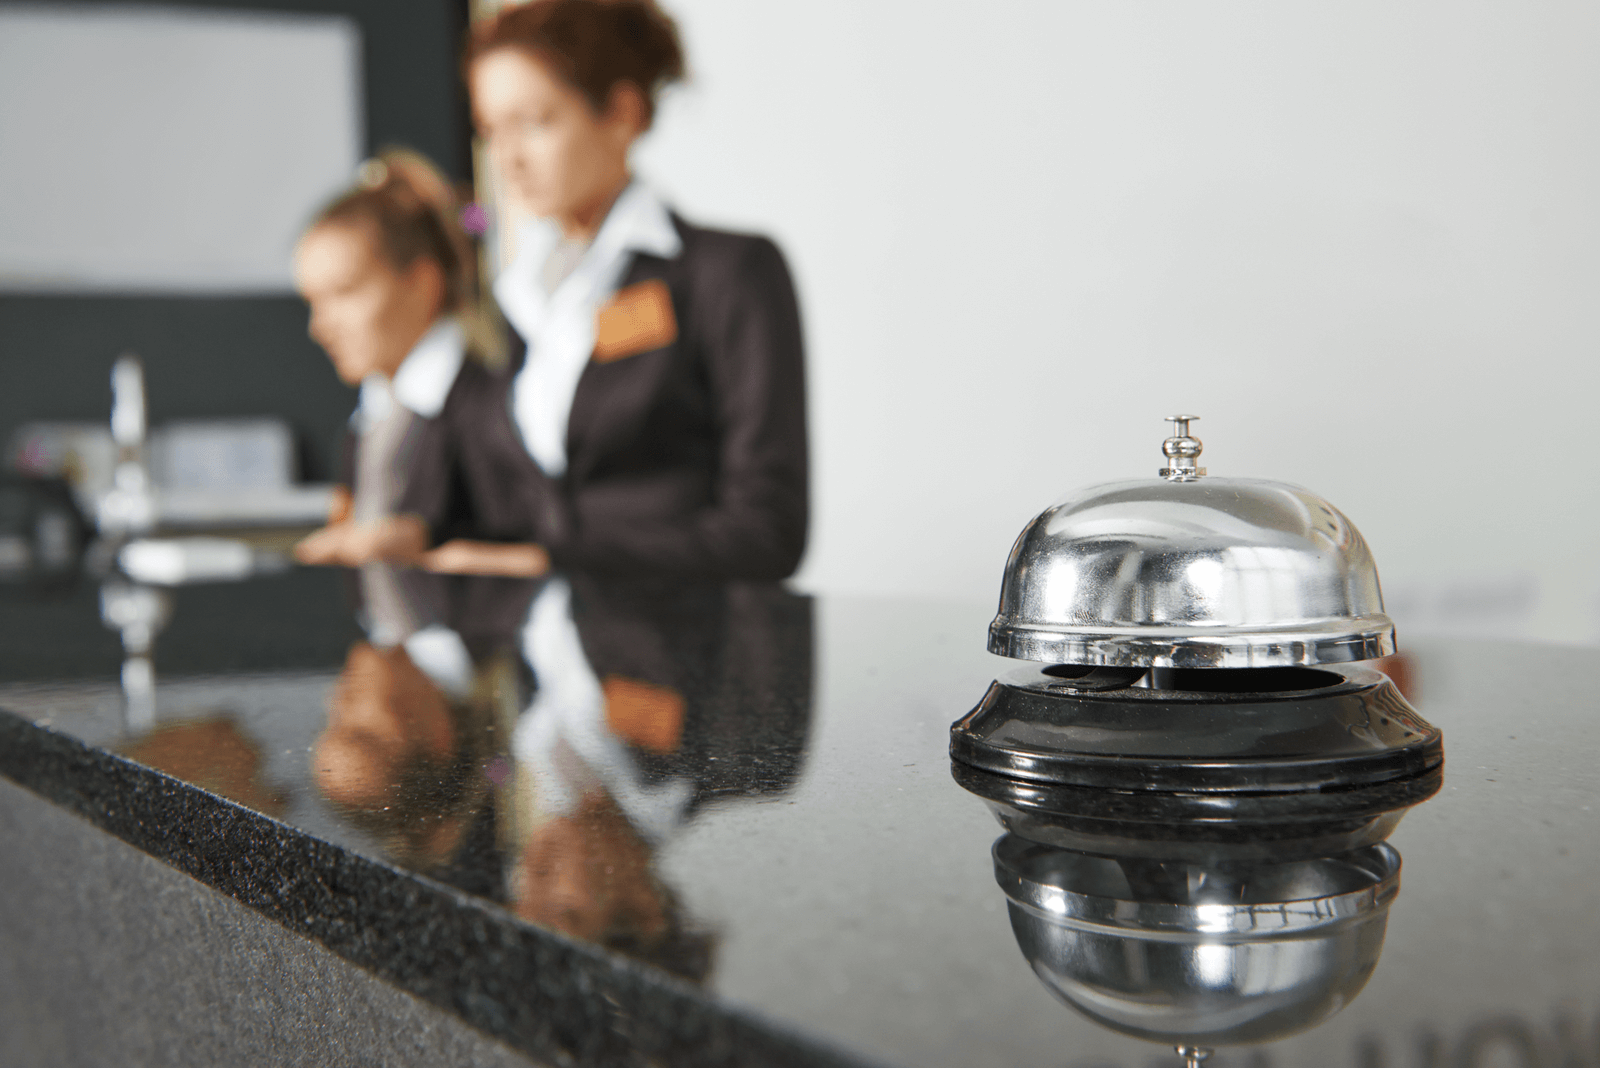 WHS processes for the Hospitality industry - Kiri Align